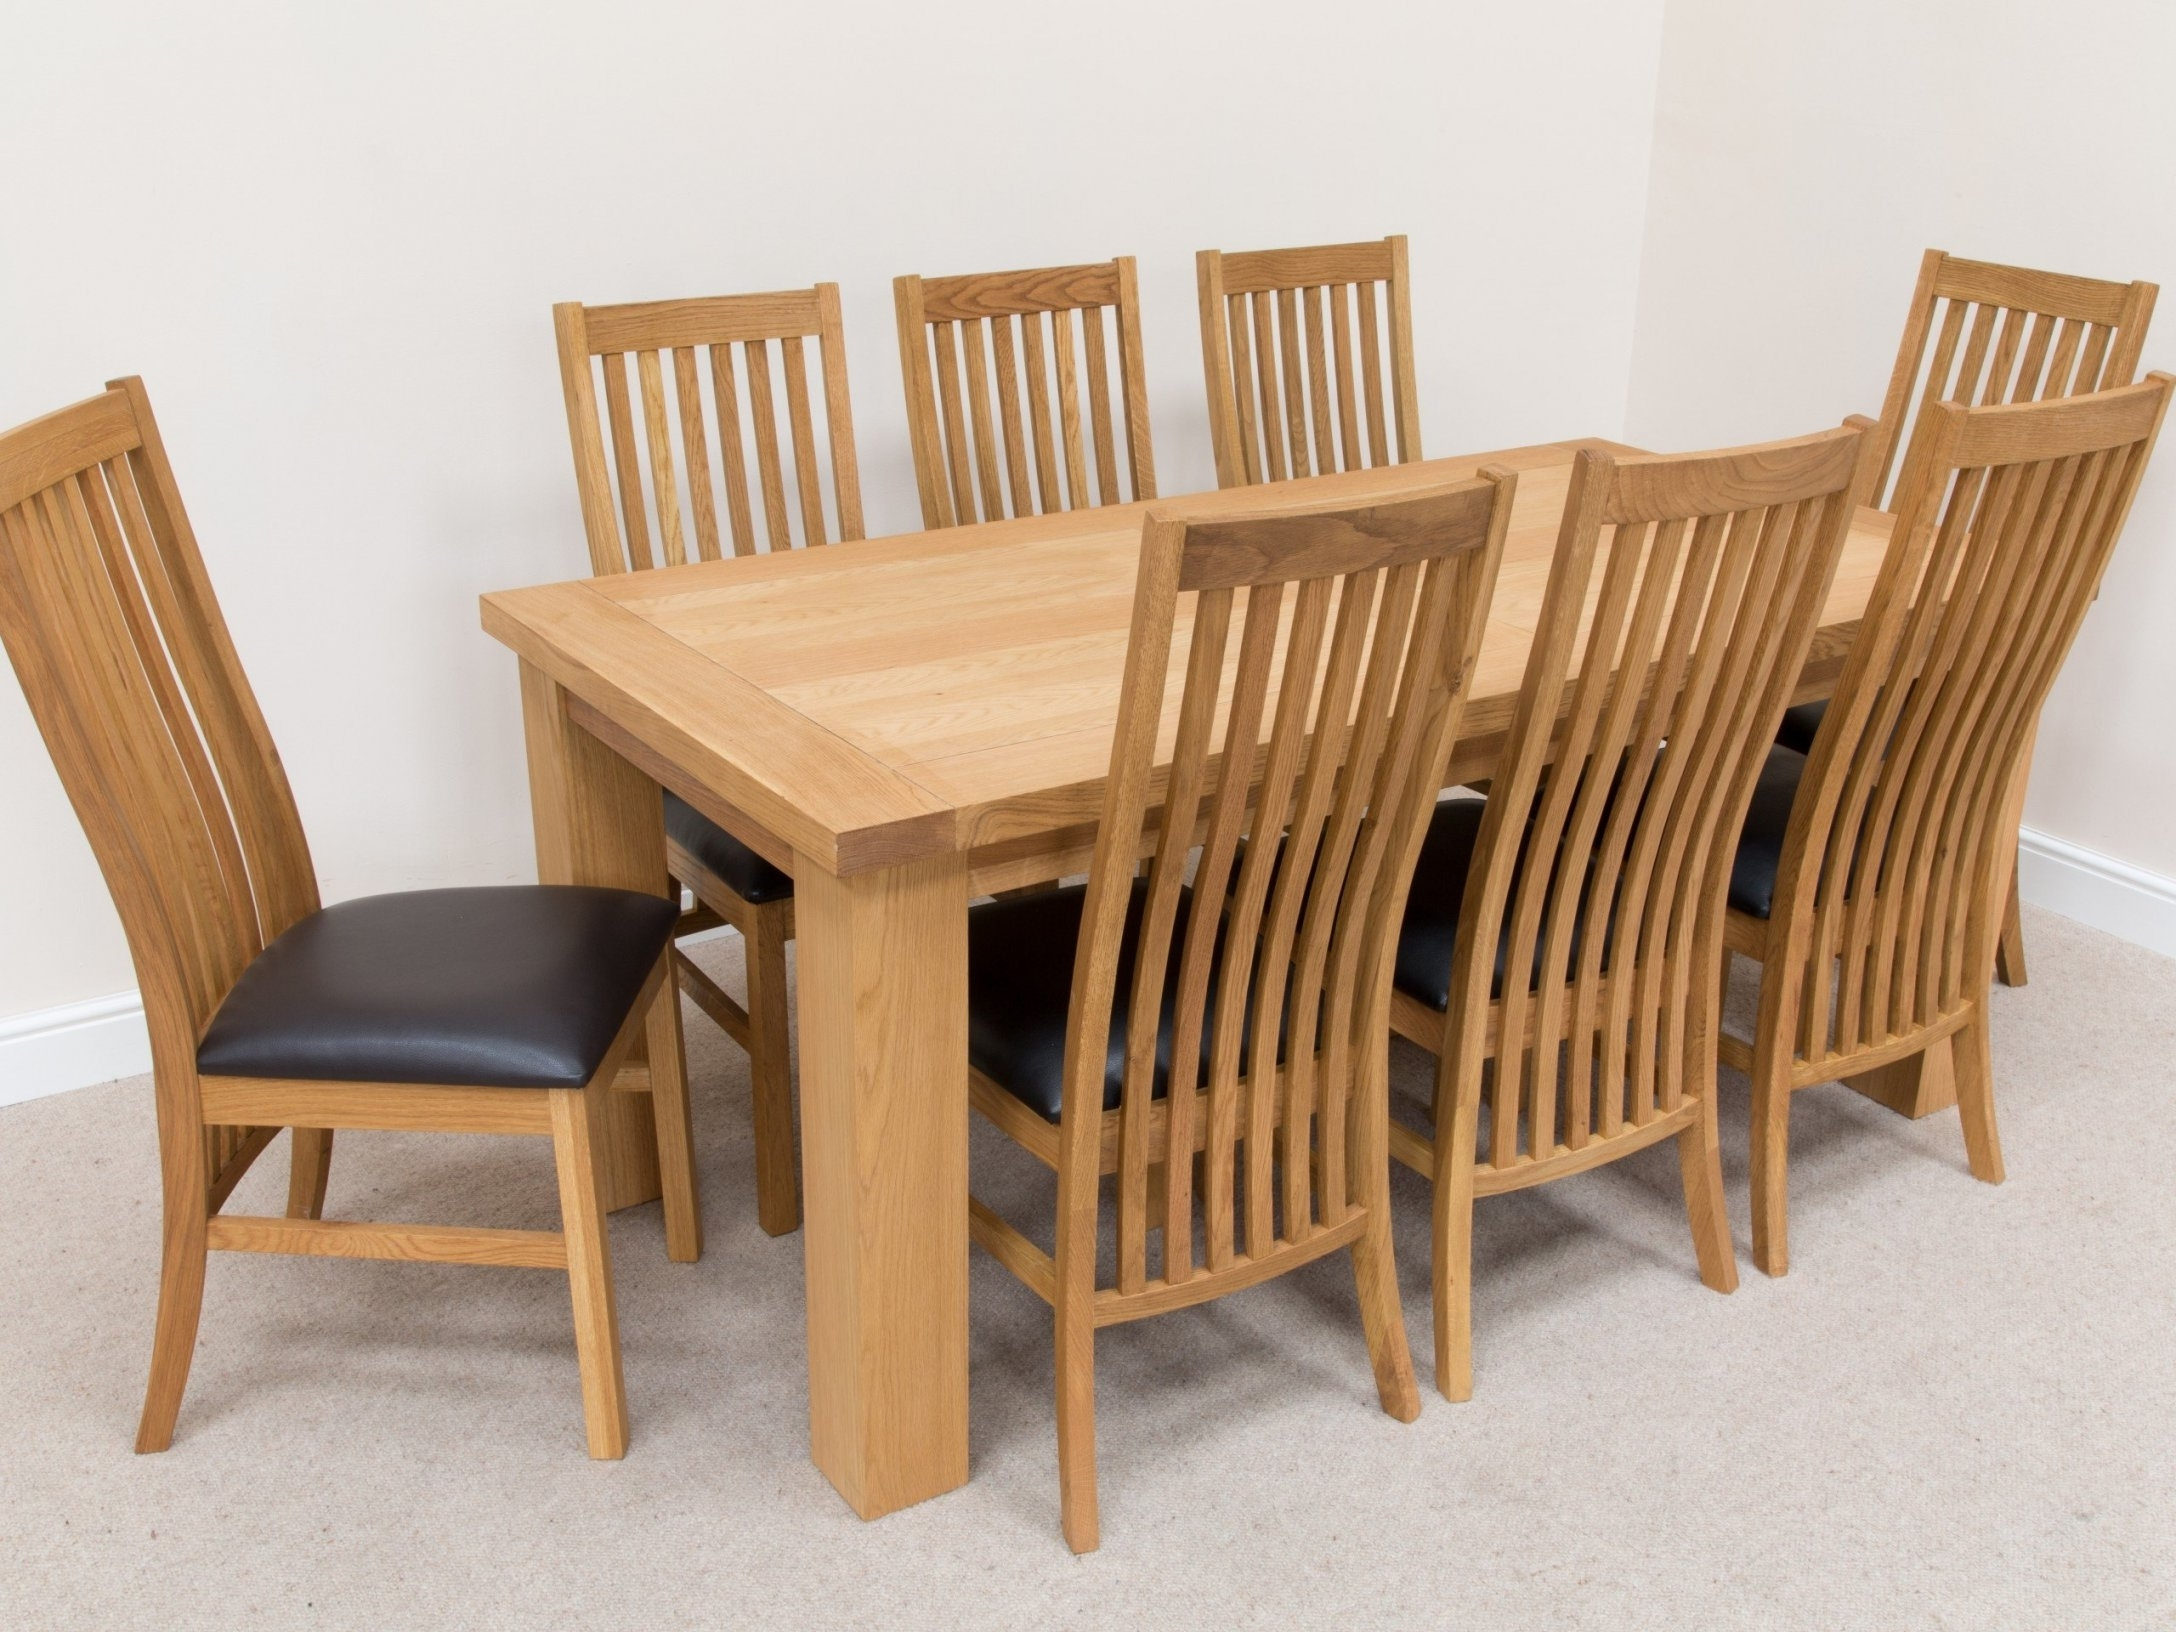 Oak 6 Seater Dining Tables With Regard To Popular Solid Wood Dining Table Set – Castrophotos (View 8 of 25)